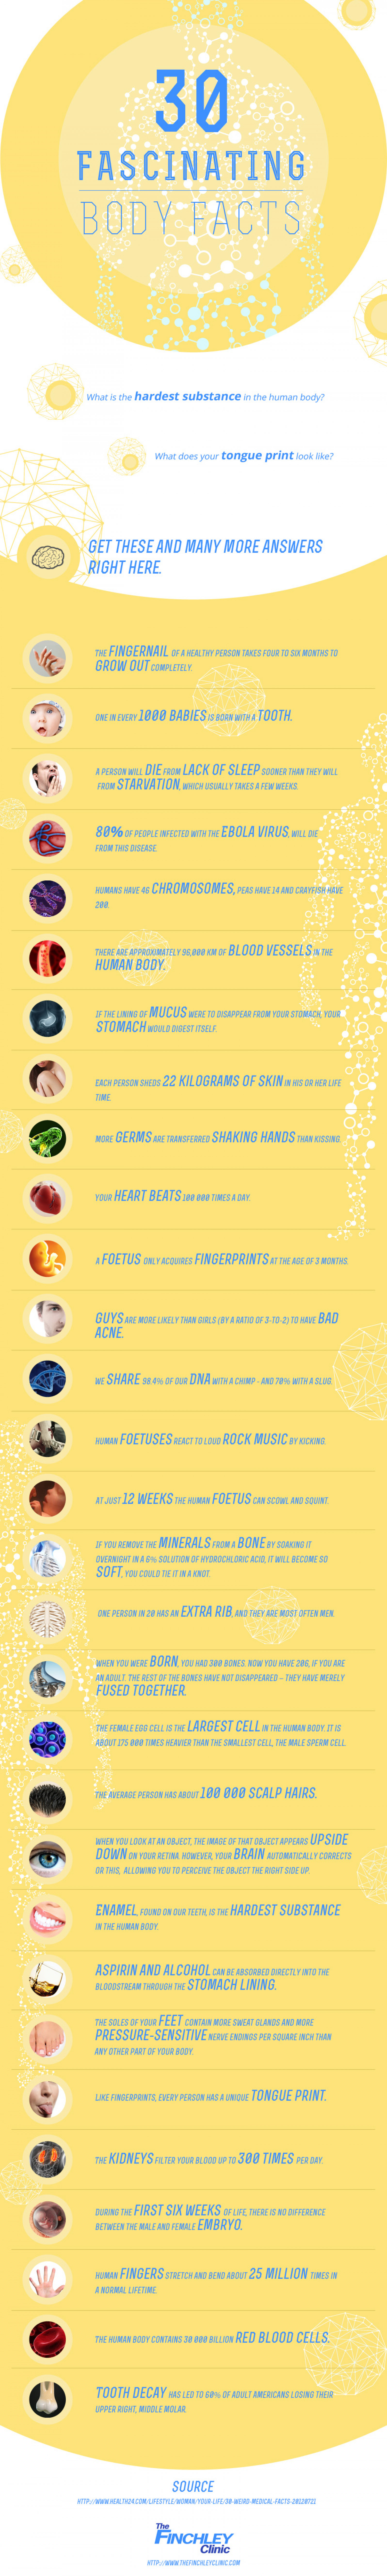 30 fascinating body facts- The finchley clinic Infographic